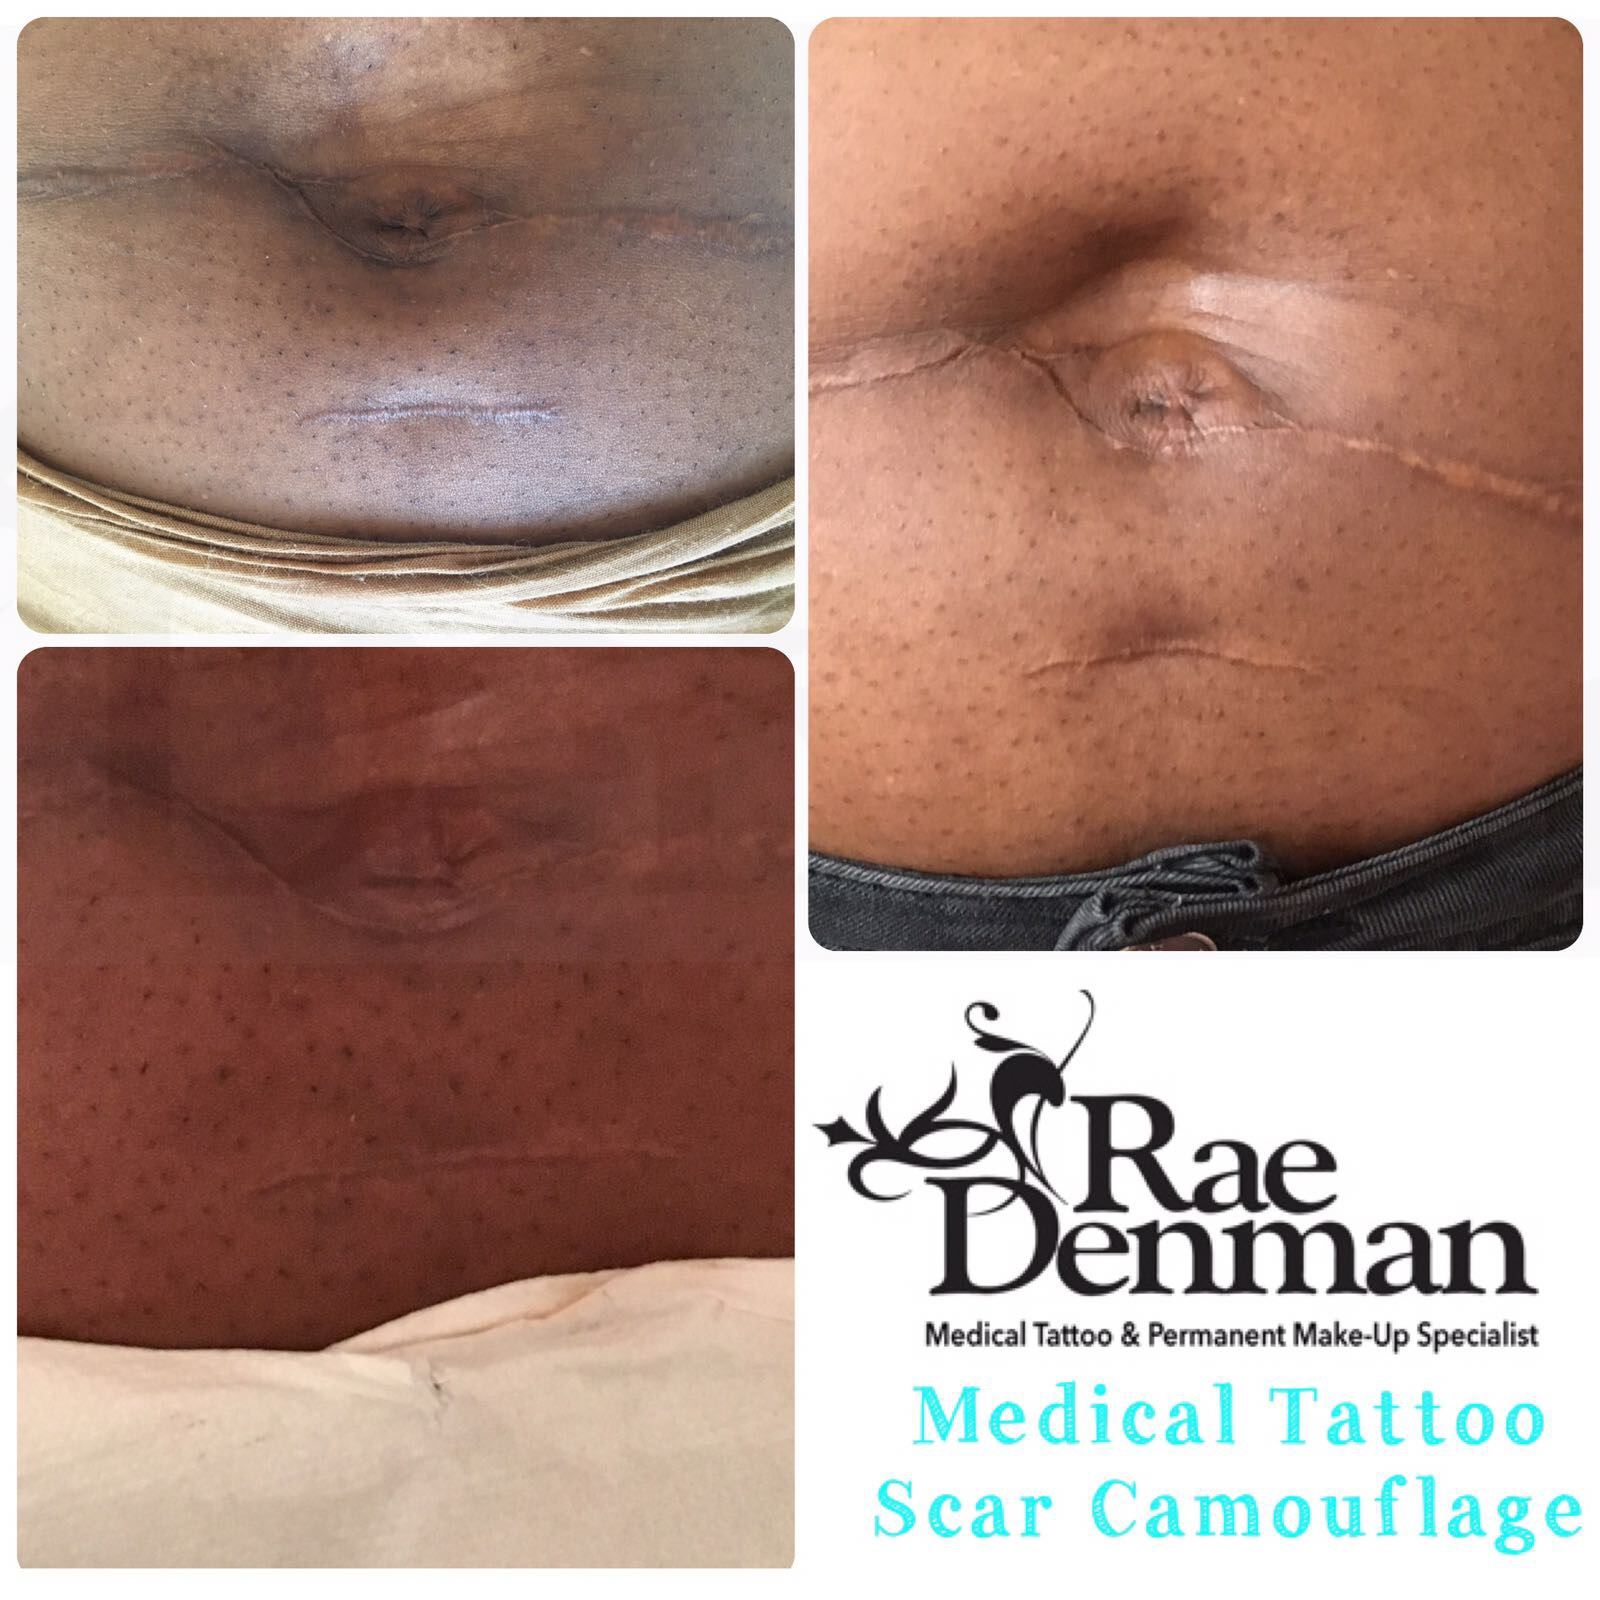 Camouflage scars with Medical Tattooing - Rae Denman